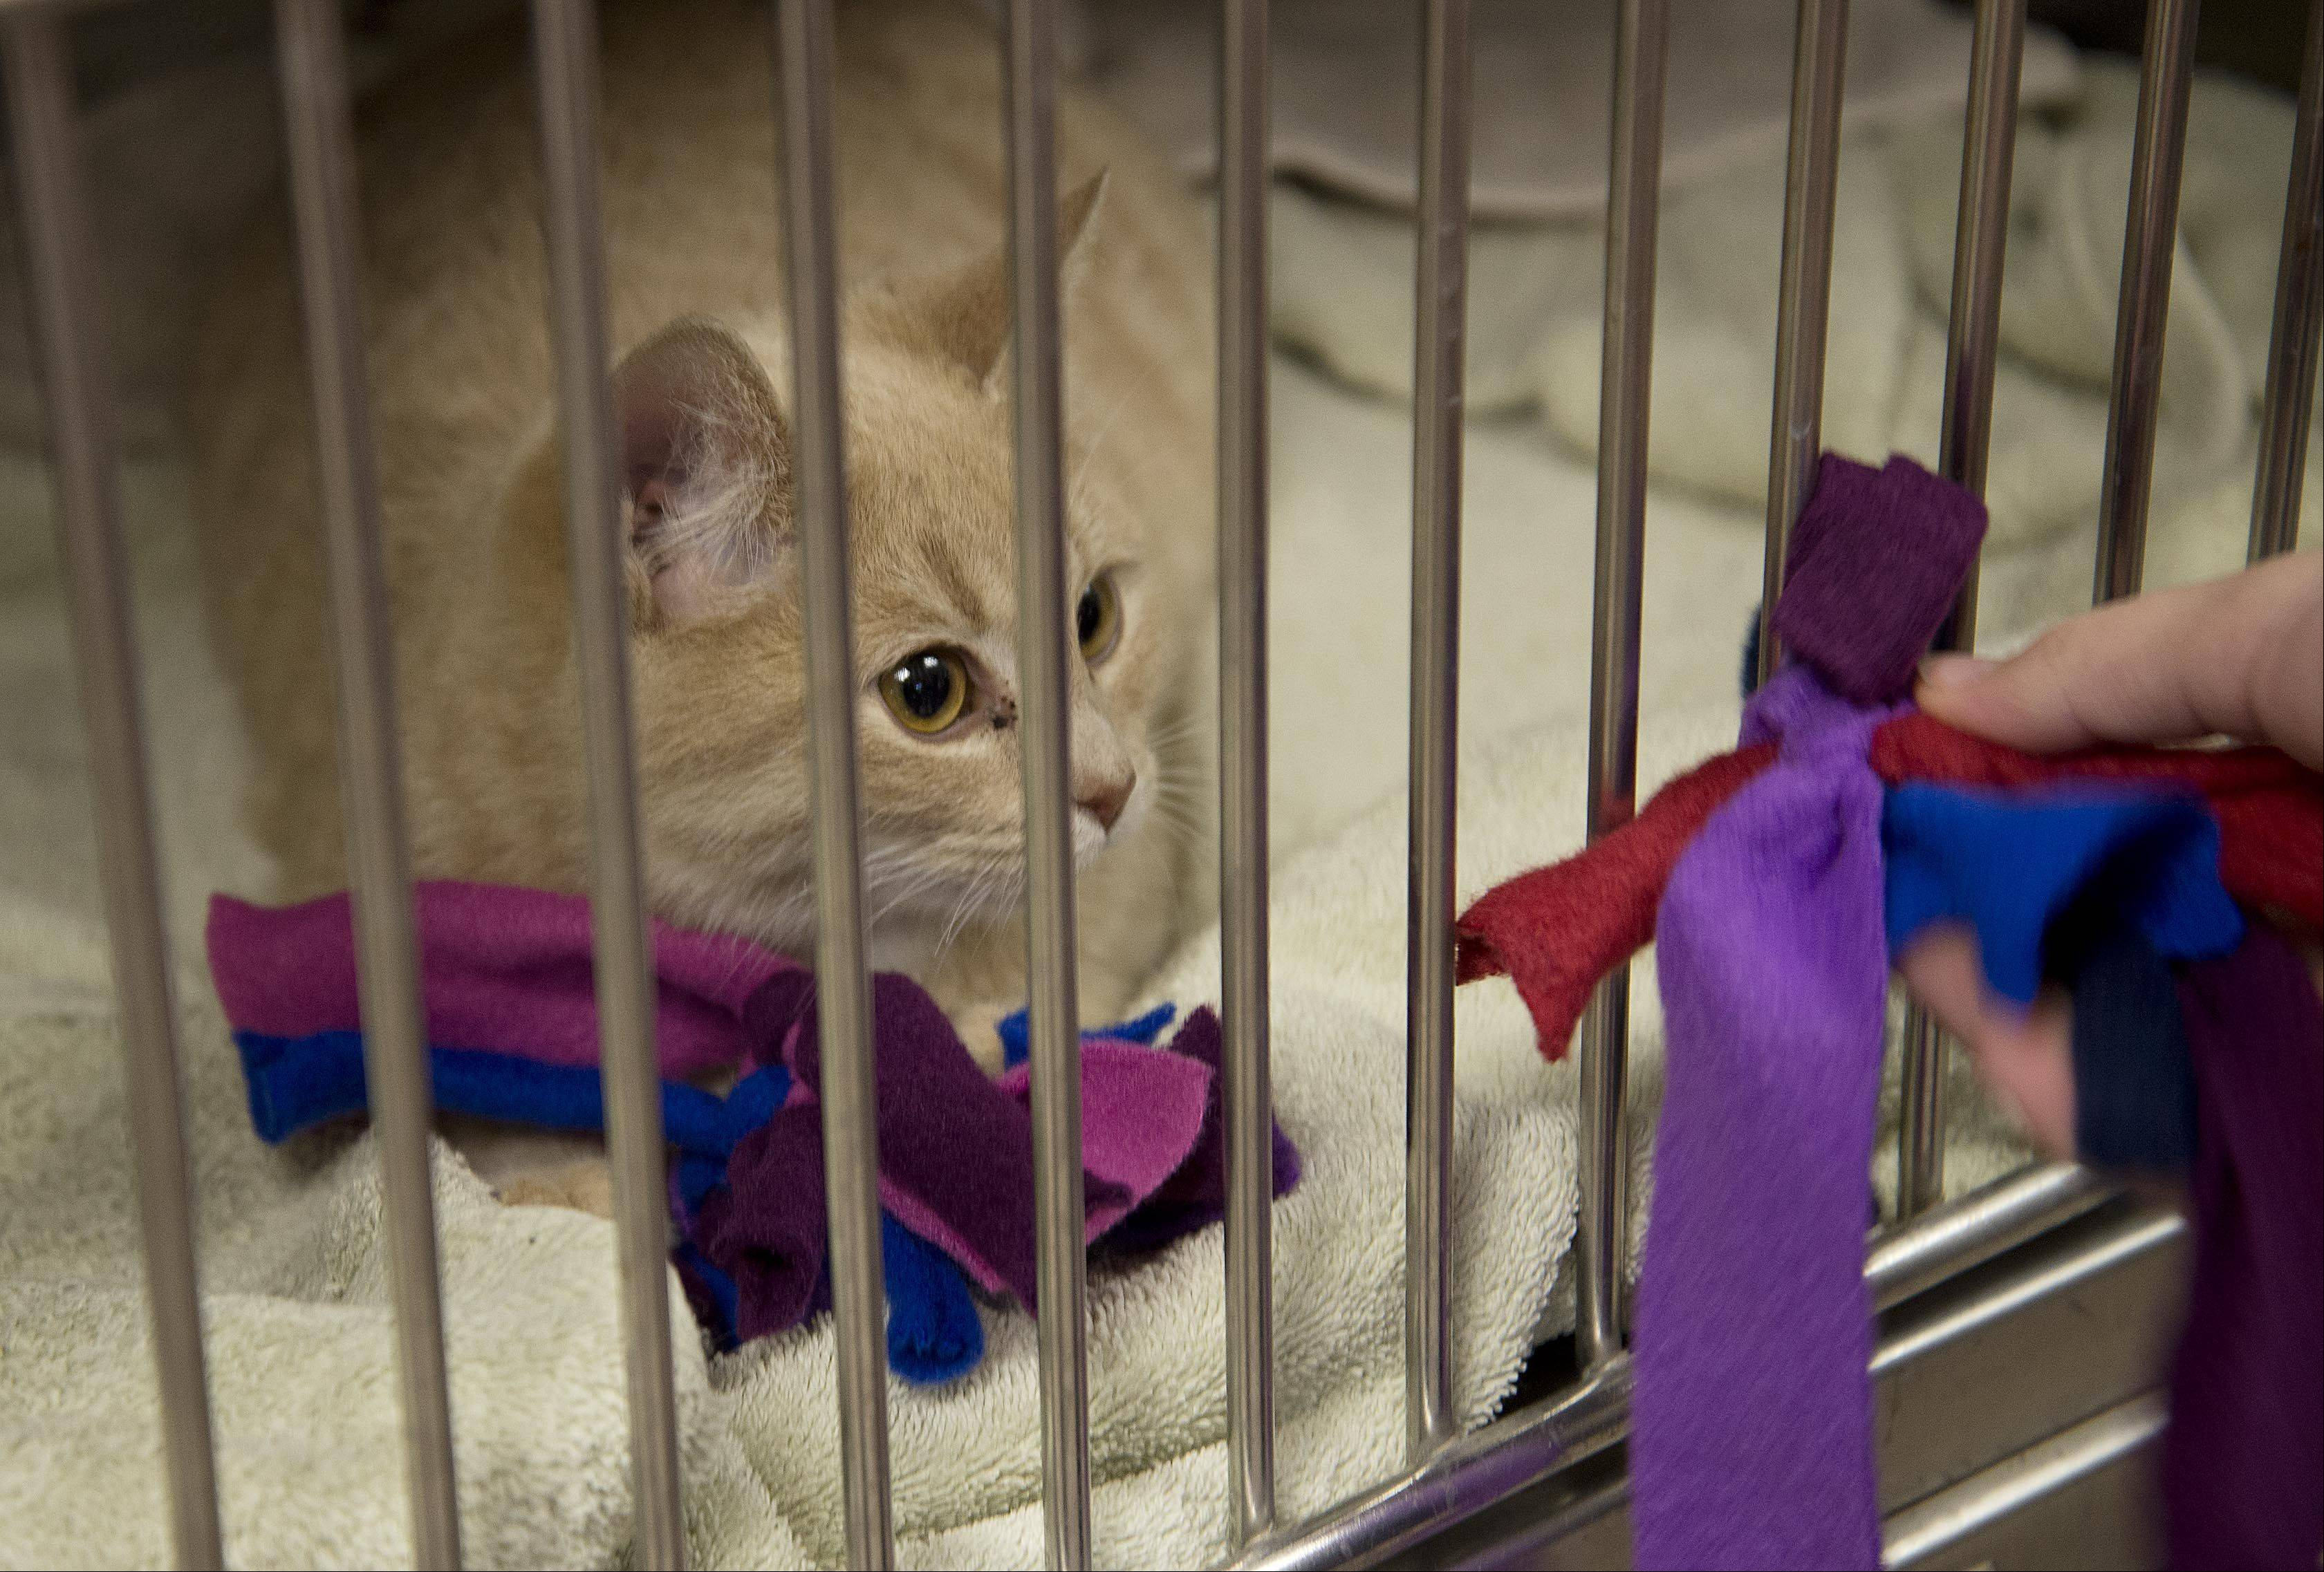 A handmade toy is presented to one of the 100 felines during a Santa Paws Workshop For Kids on Sunday at the Anderson Animal Shelter in South Elgin. The event allowed young participants to interact with the shelter's animals and learn about their care